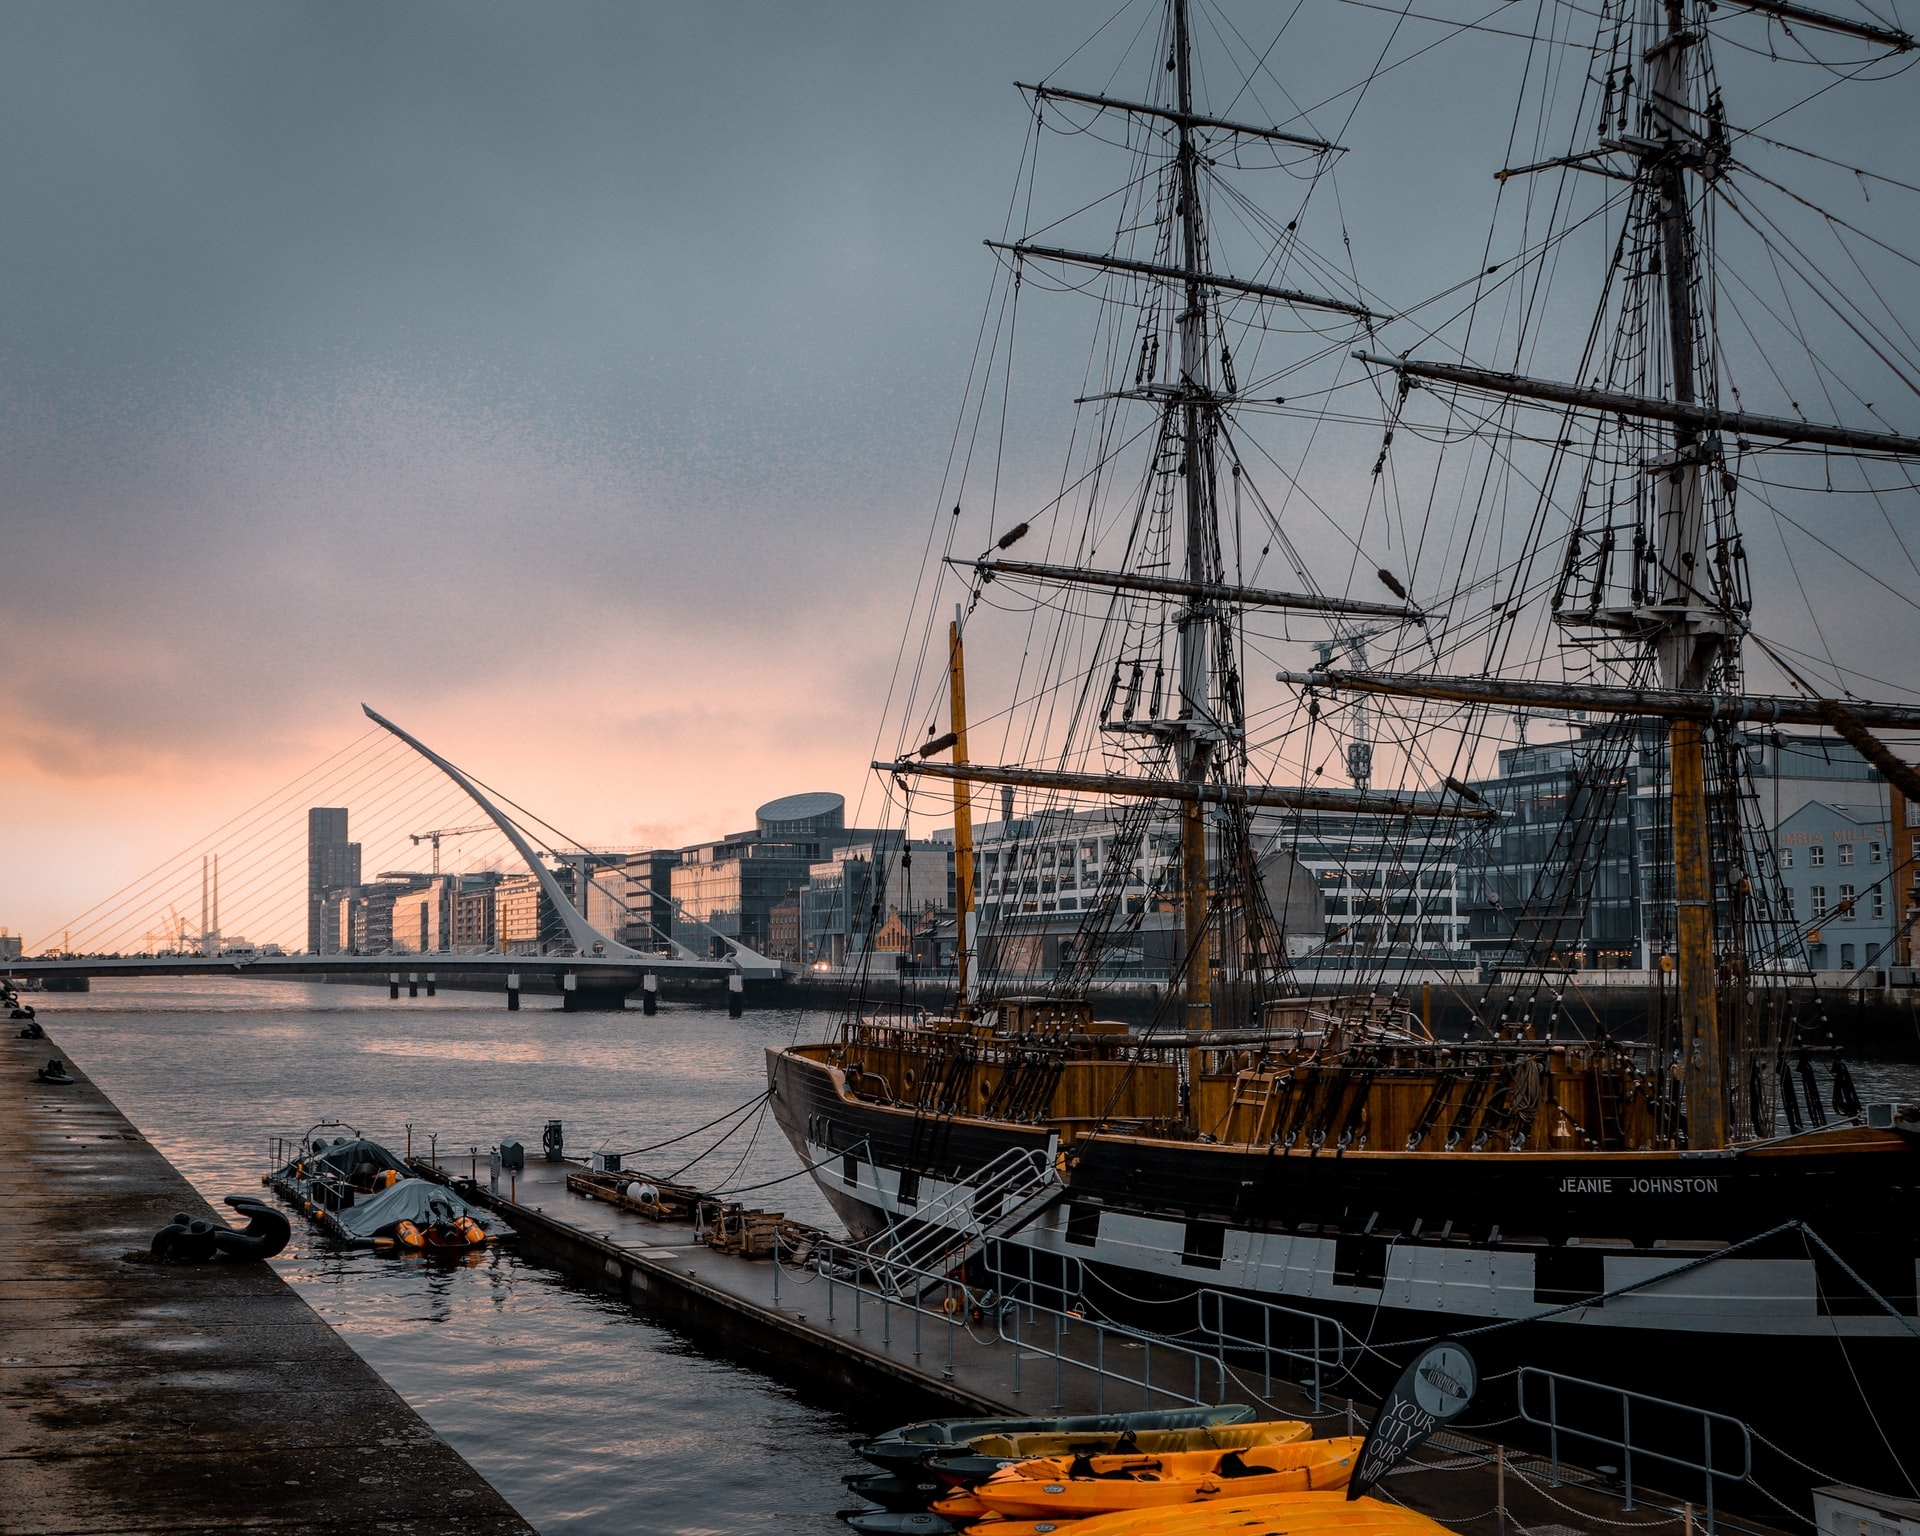 dublin 2 day itinerary - JEANIE JOHNSTON TALL SHIP